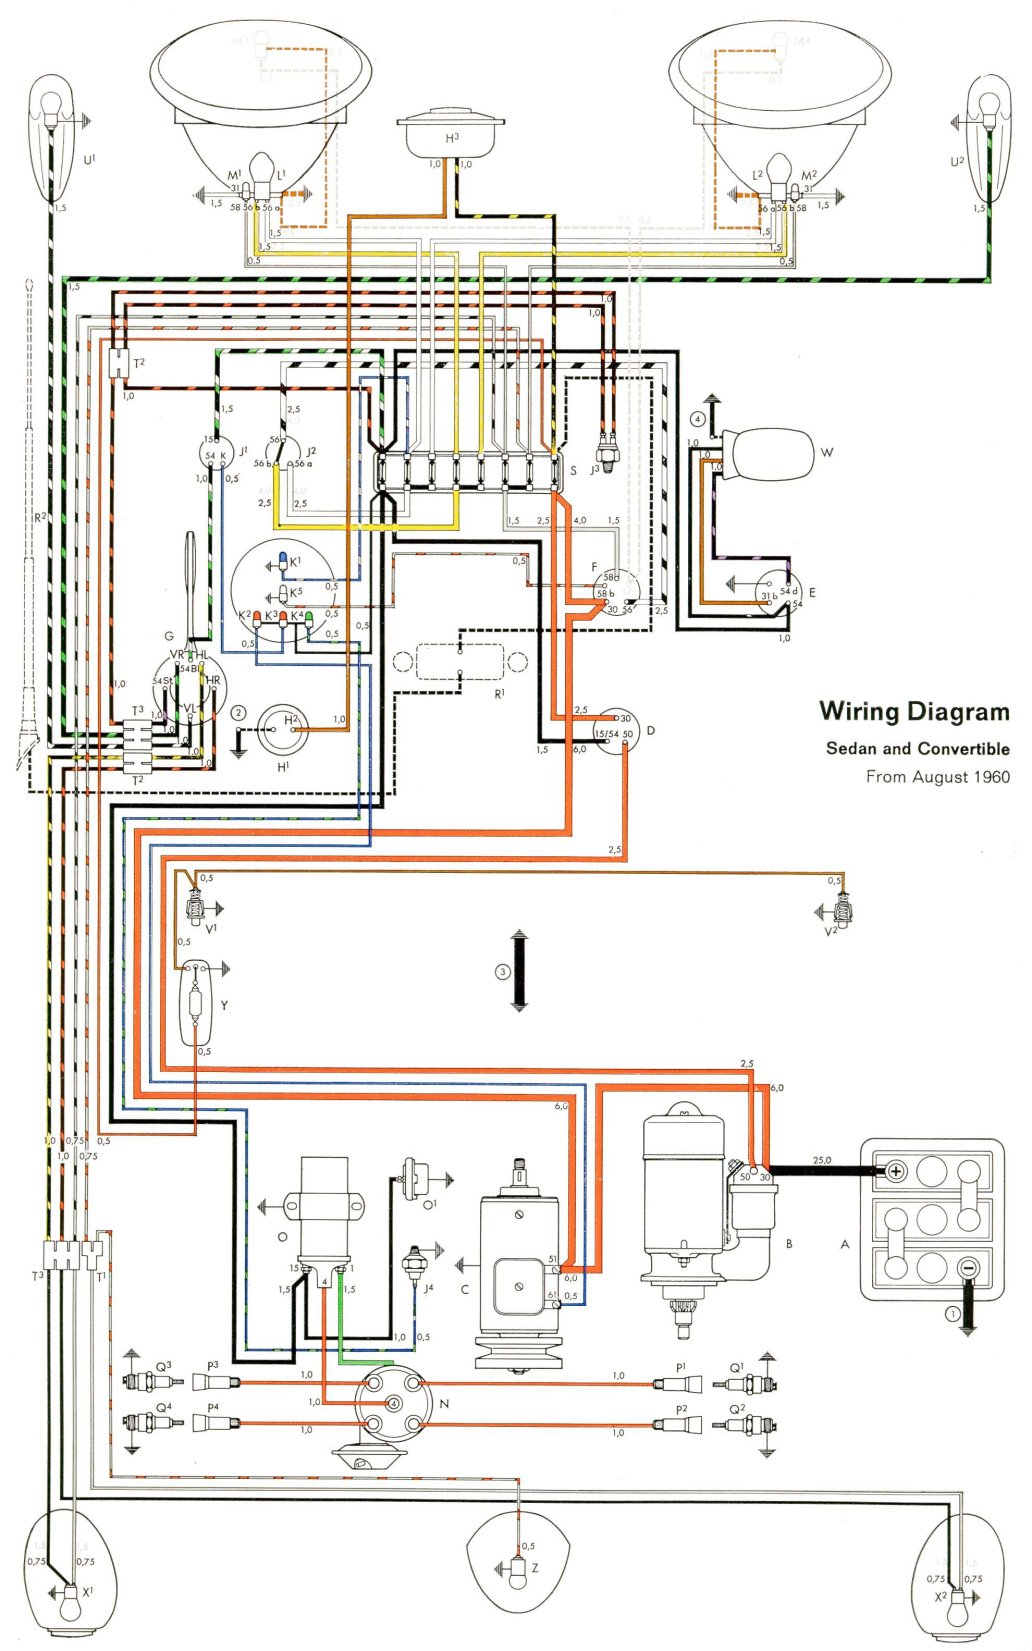 bug_61 1961 beetle wiring diagram thegoldenbug com vw bug wiring diagram at readyjetset.co